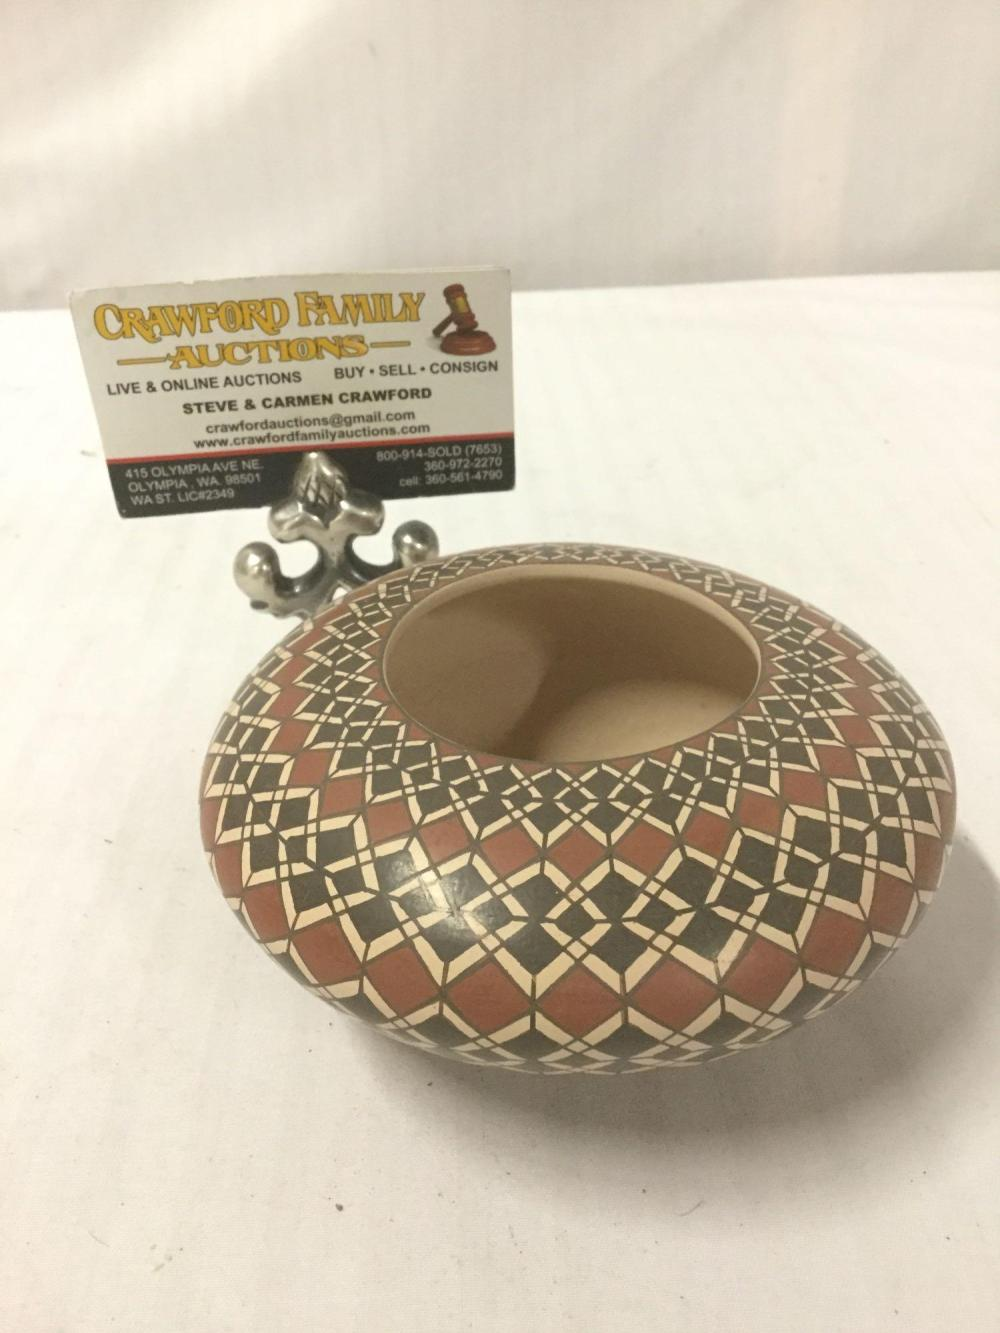 Lot 66: Ceramic bowl w/ graduated geometric grid pattern made by Juana Ledezma Veloz in Mexico